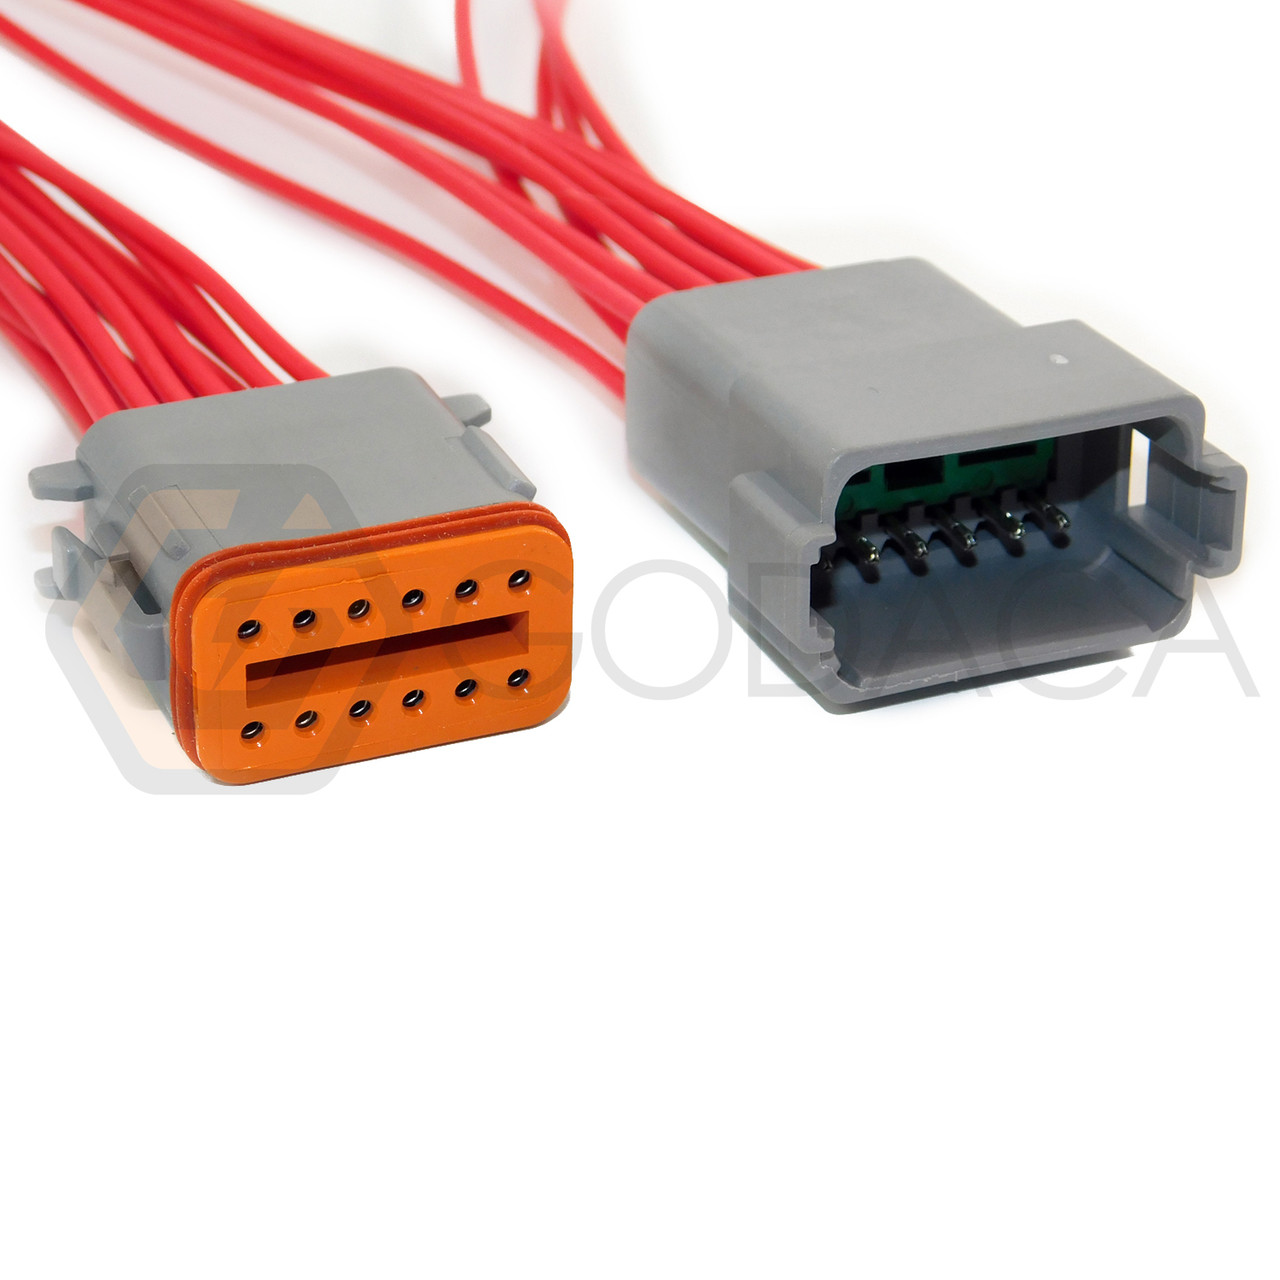 01020101000527__61976.1527879008?c=2&imbypass=on 1x set female and male connector plug 12 way 12 pin deutsch dt